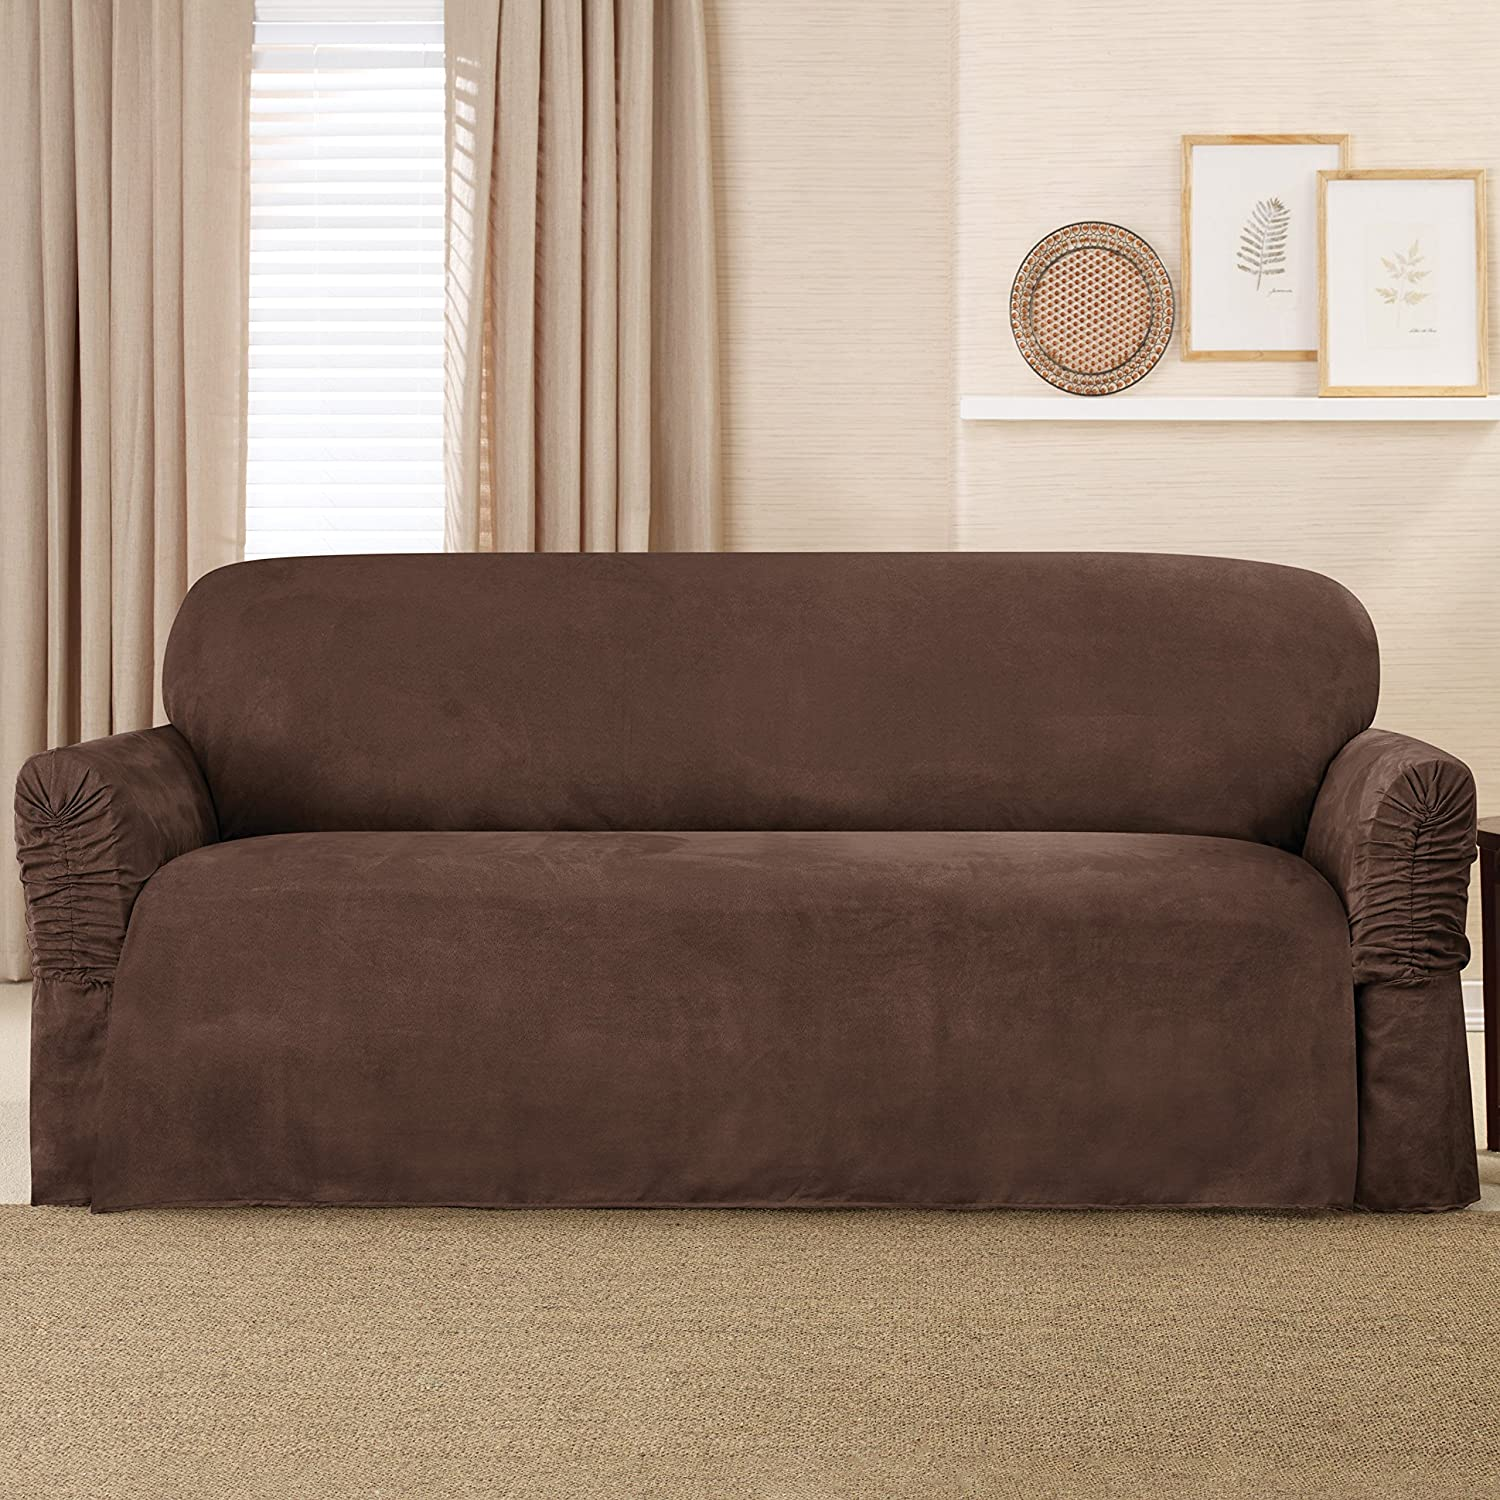 Amazon Sure Fit Faux Suede Sofa Slipcover Chocolate